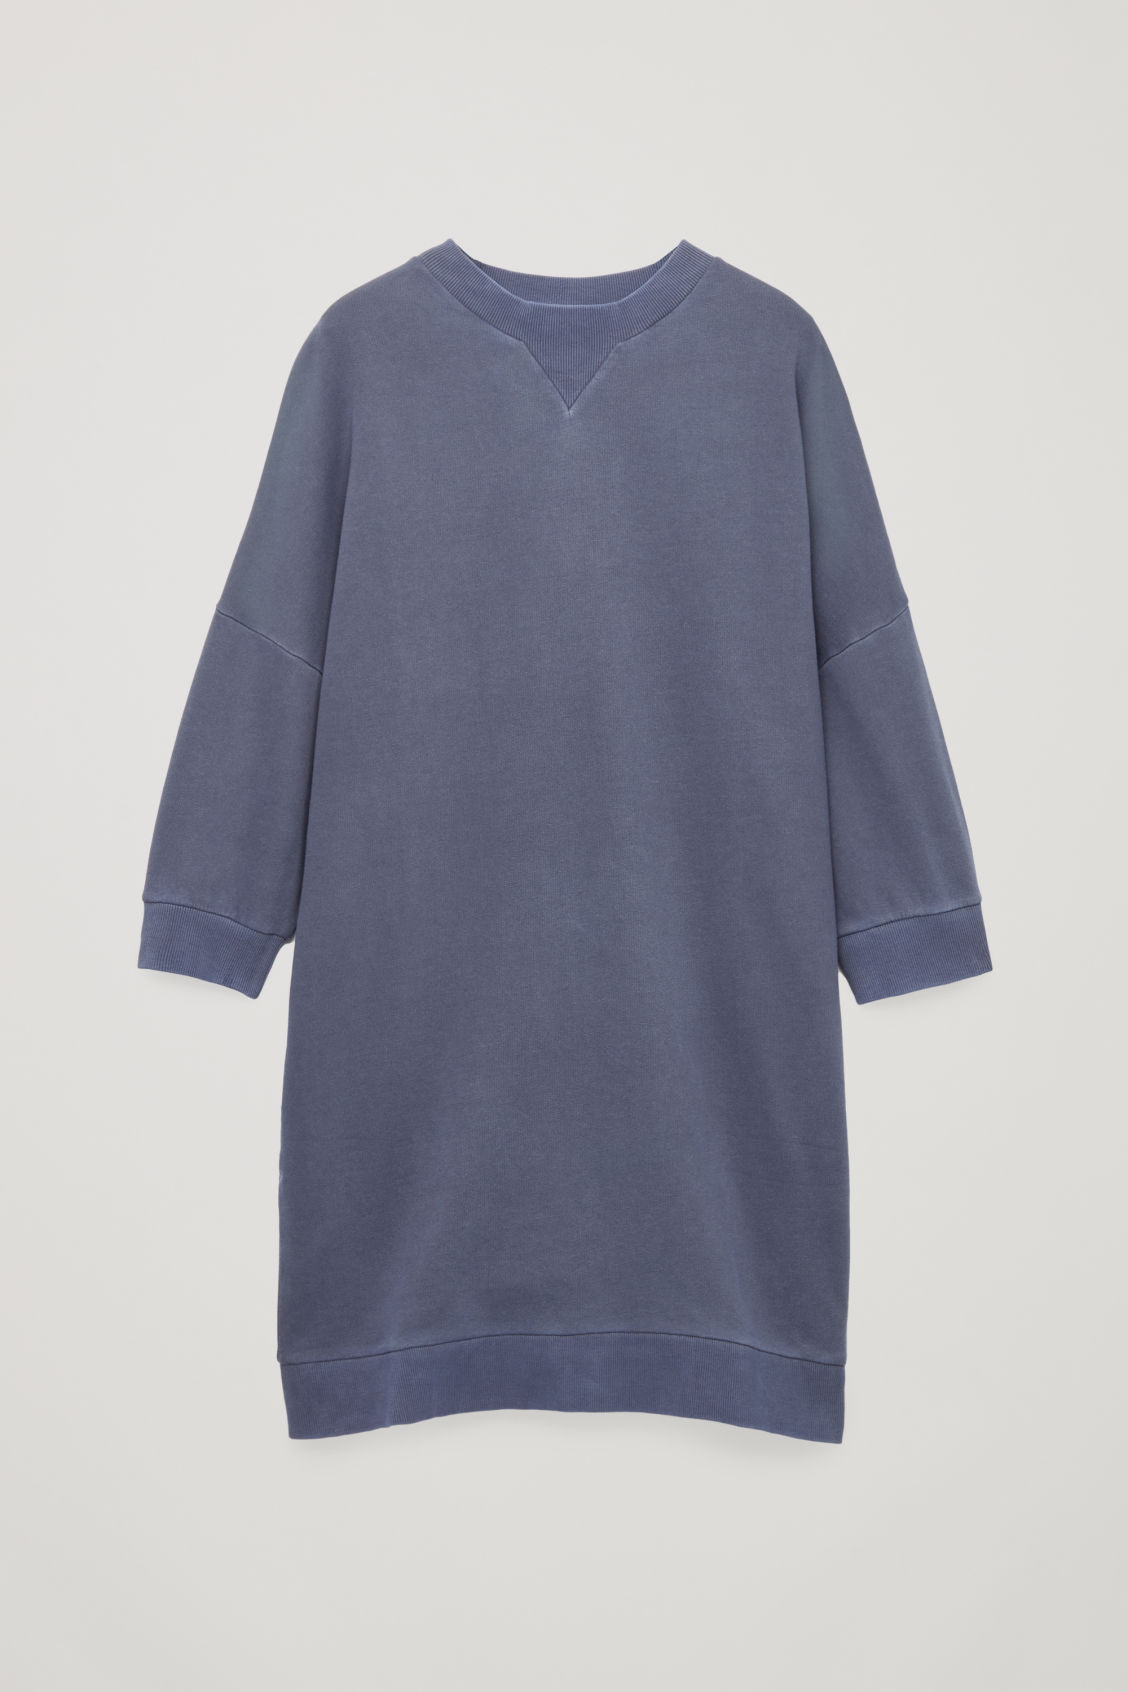 Front image of Cos ¾-sleeved sweatshirt dress in blue